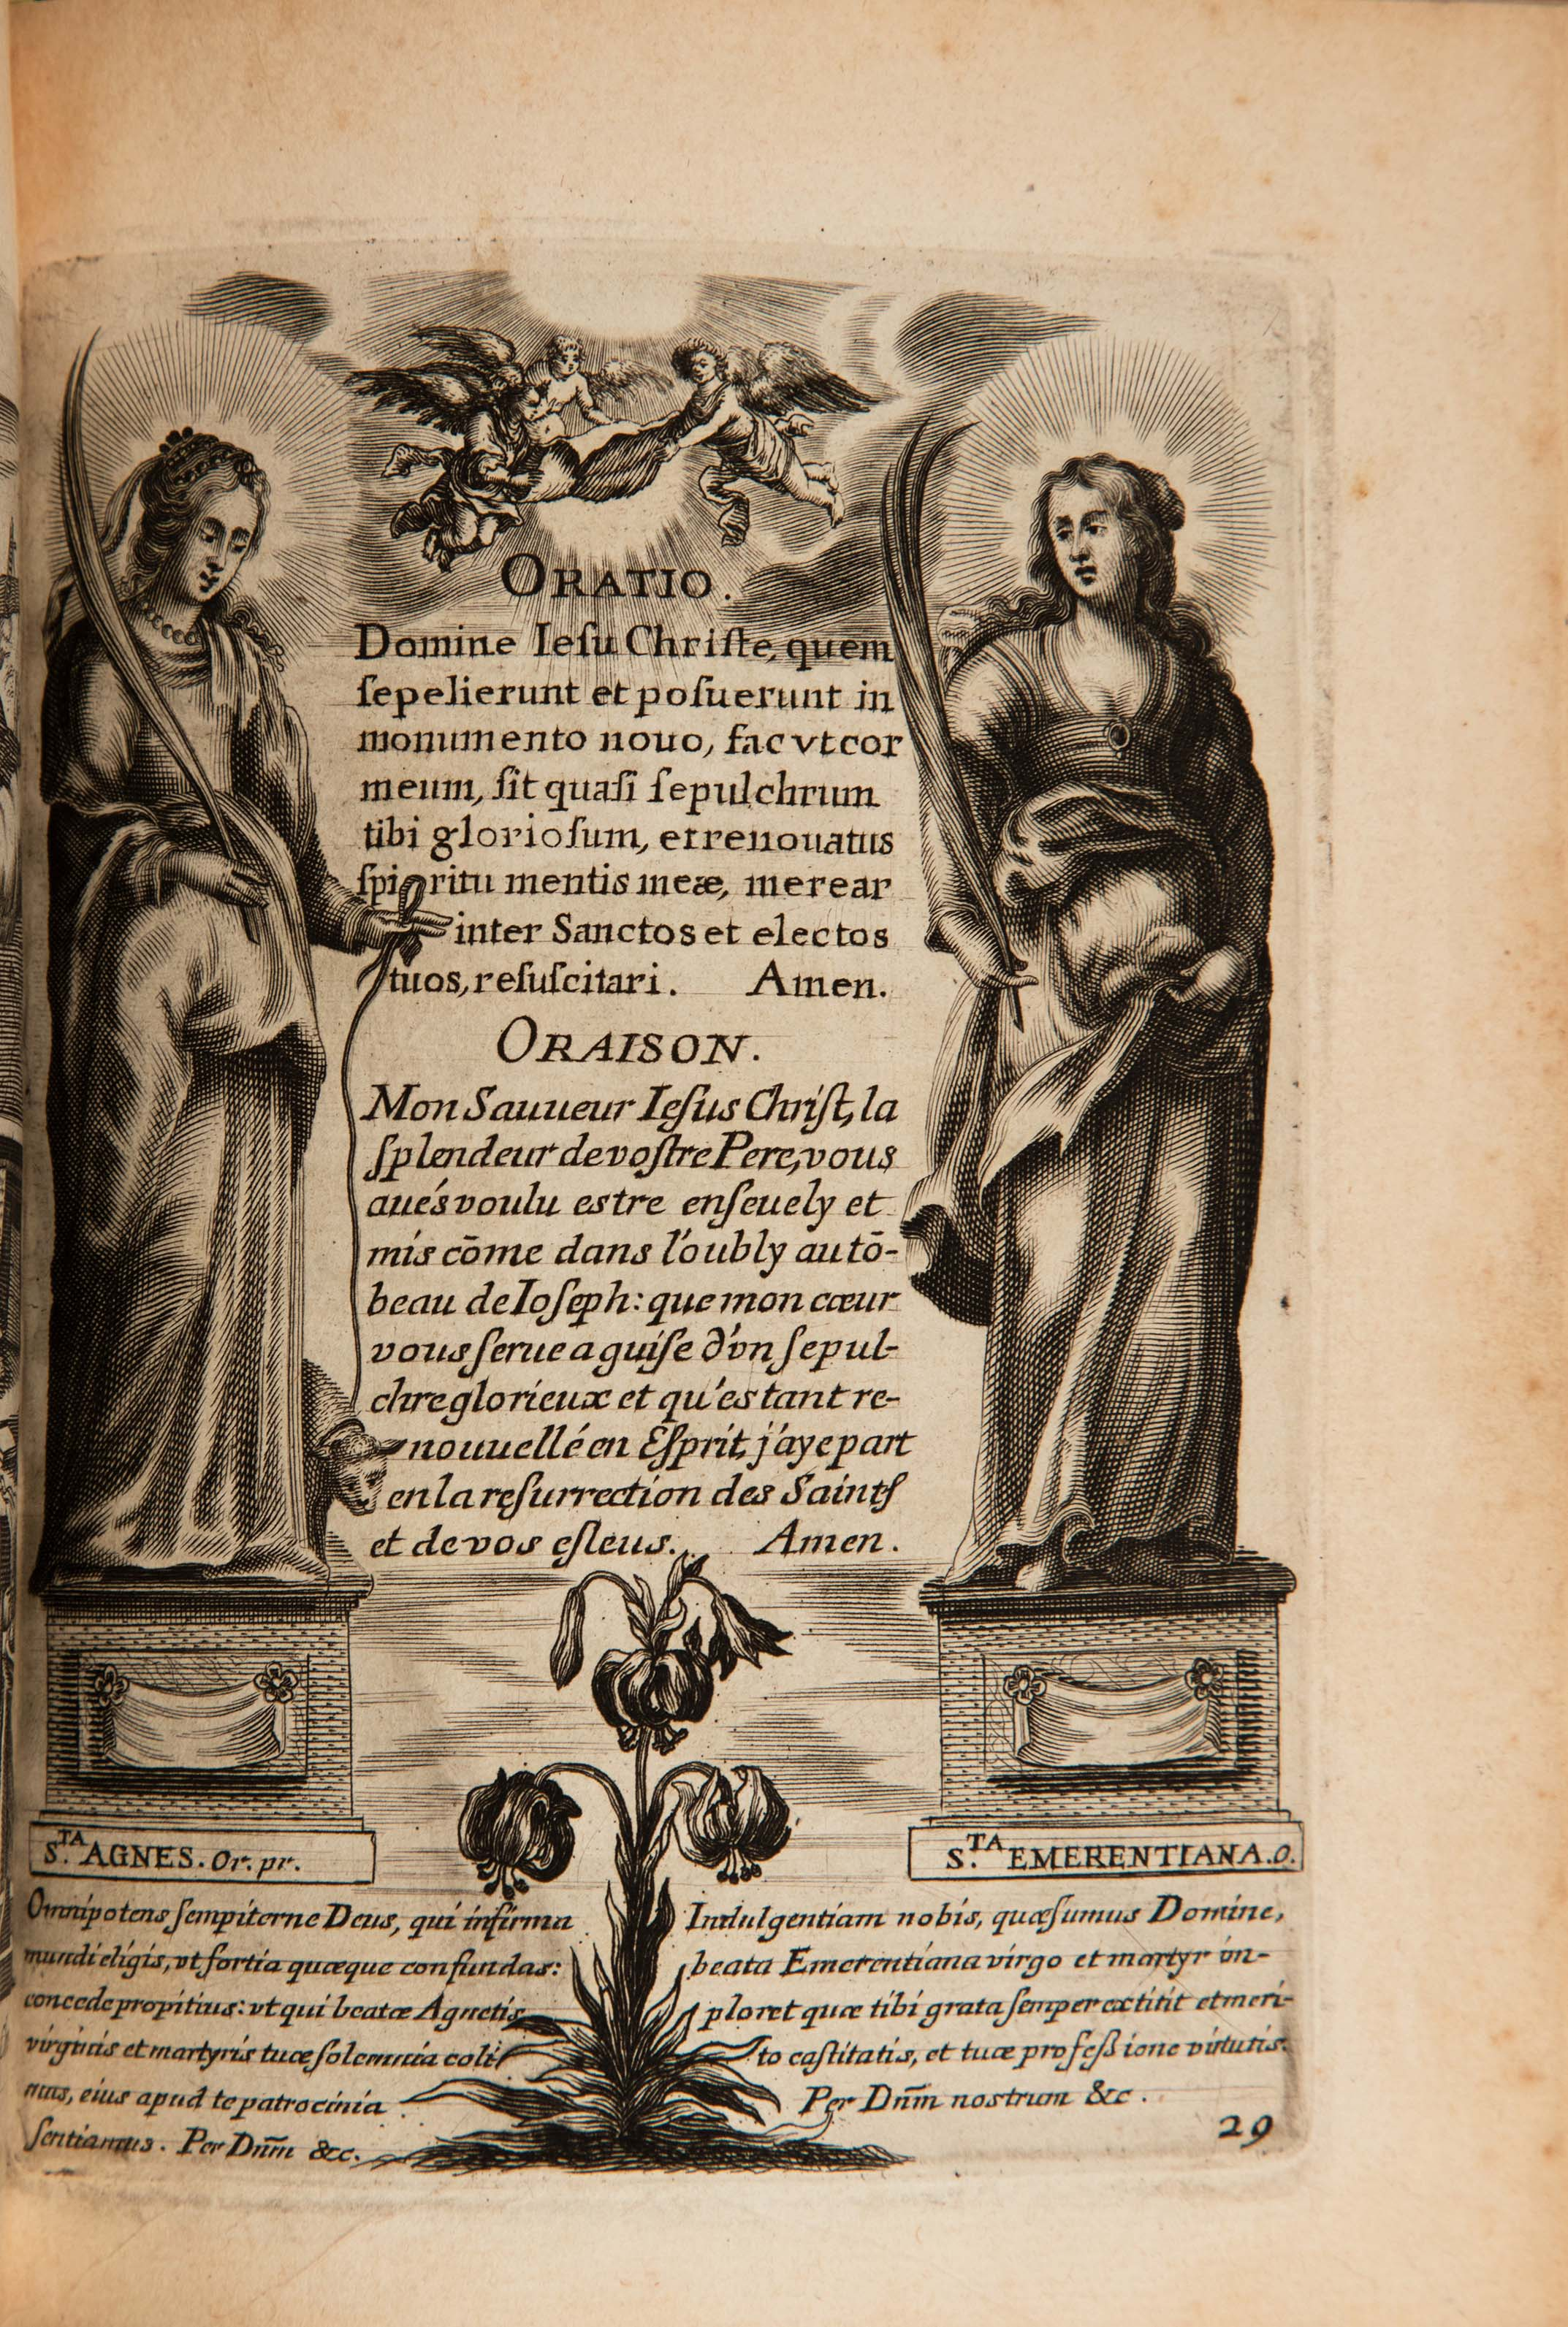 Prayer in both French and Latin. Images show two women figures with halos holding swords.